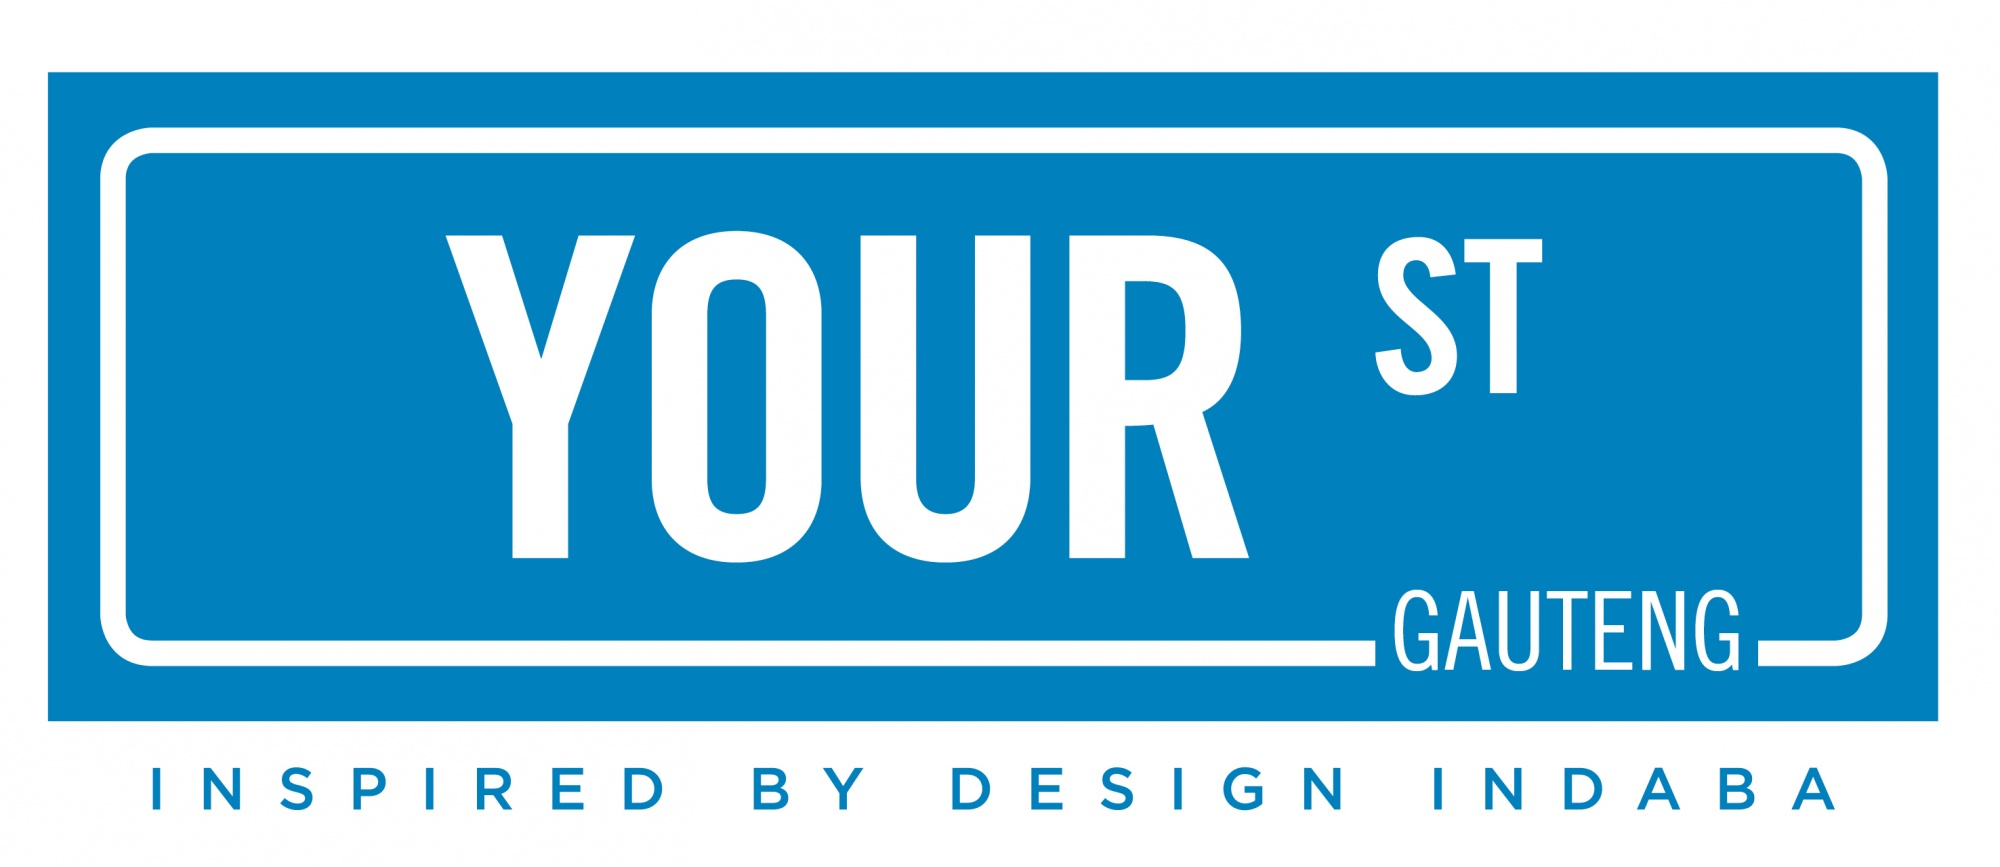 Nevertheless It Gives Us Great Pleasure To Announce The Six Finalists In The Your Street Gauteng Challenge